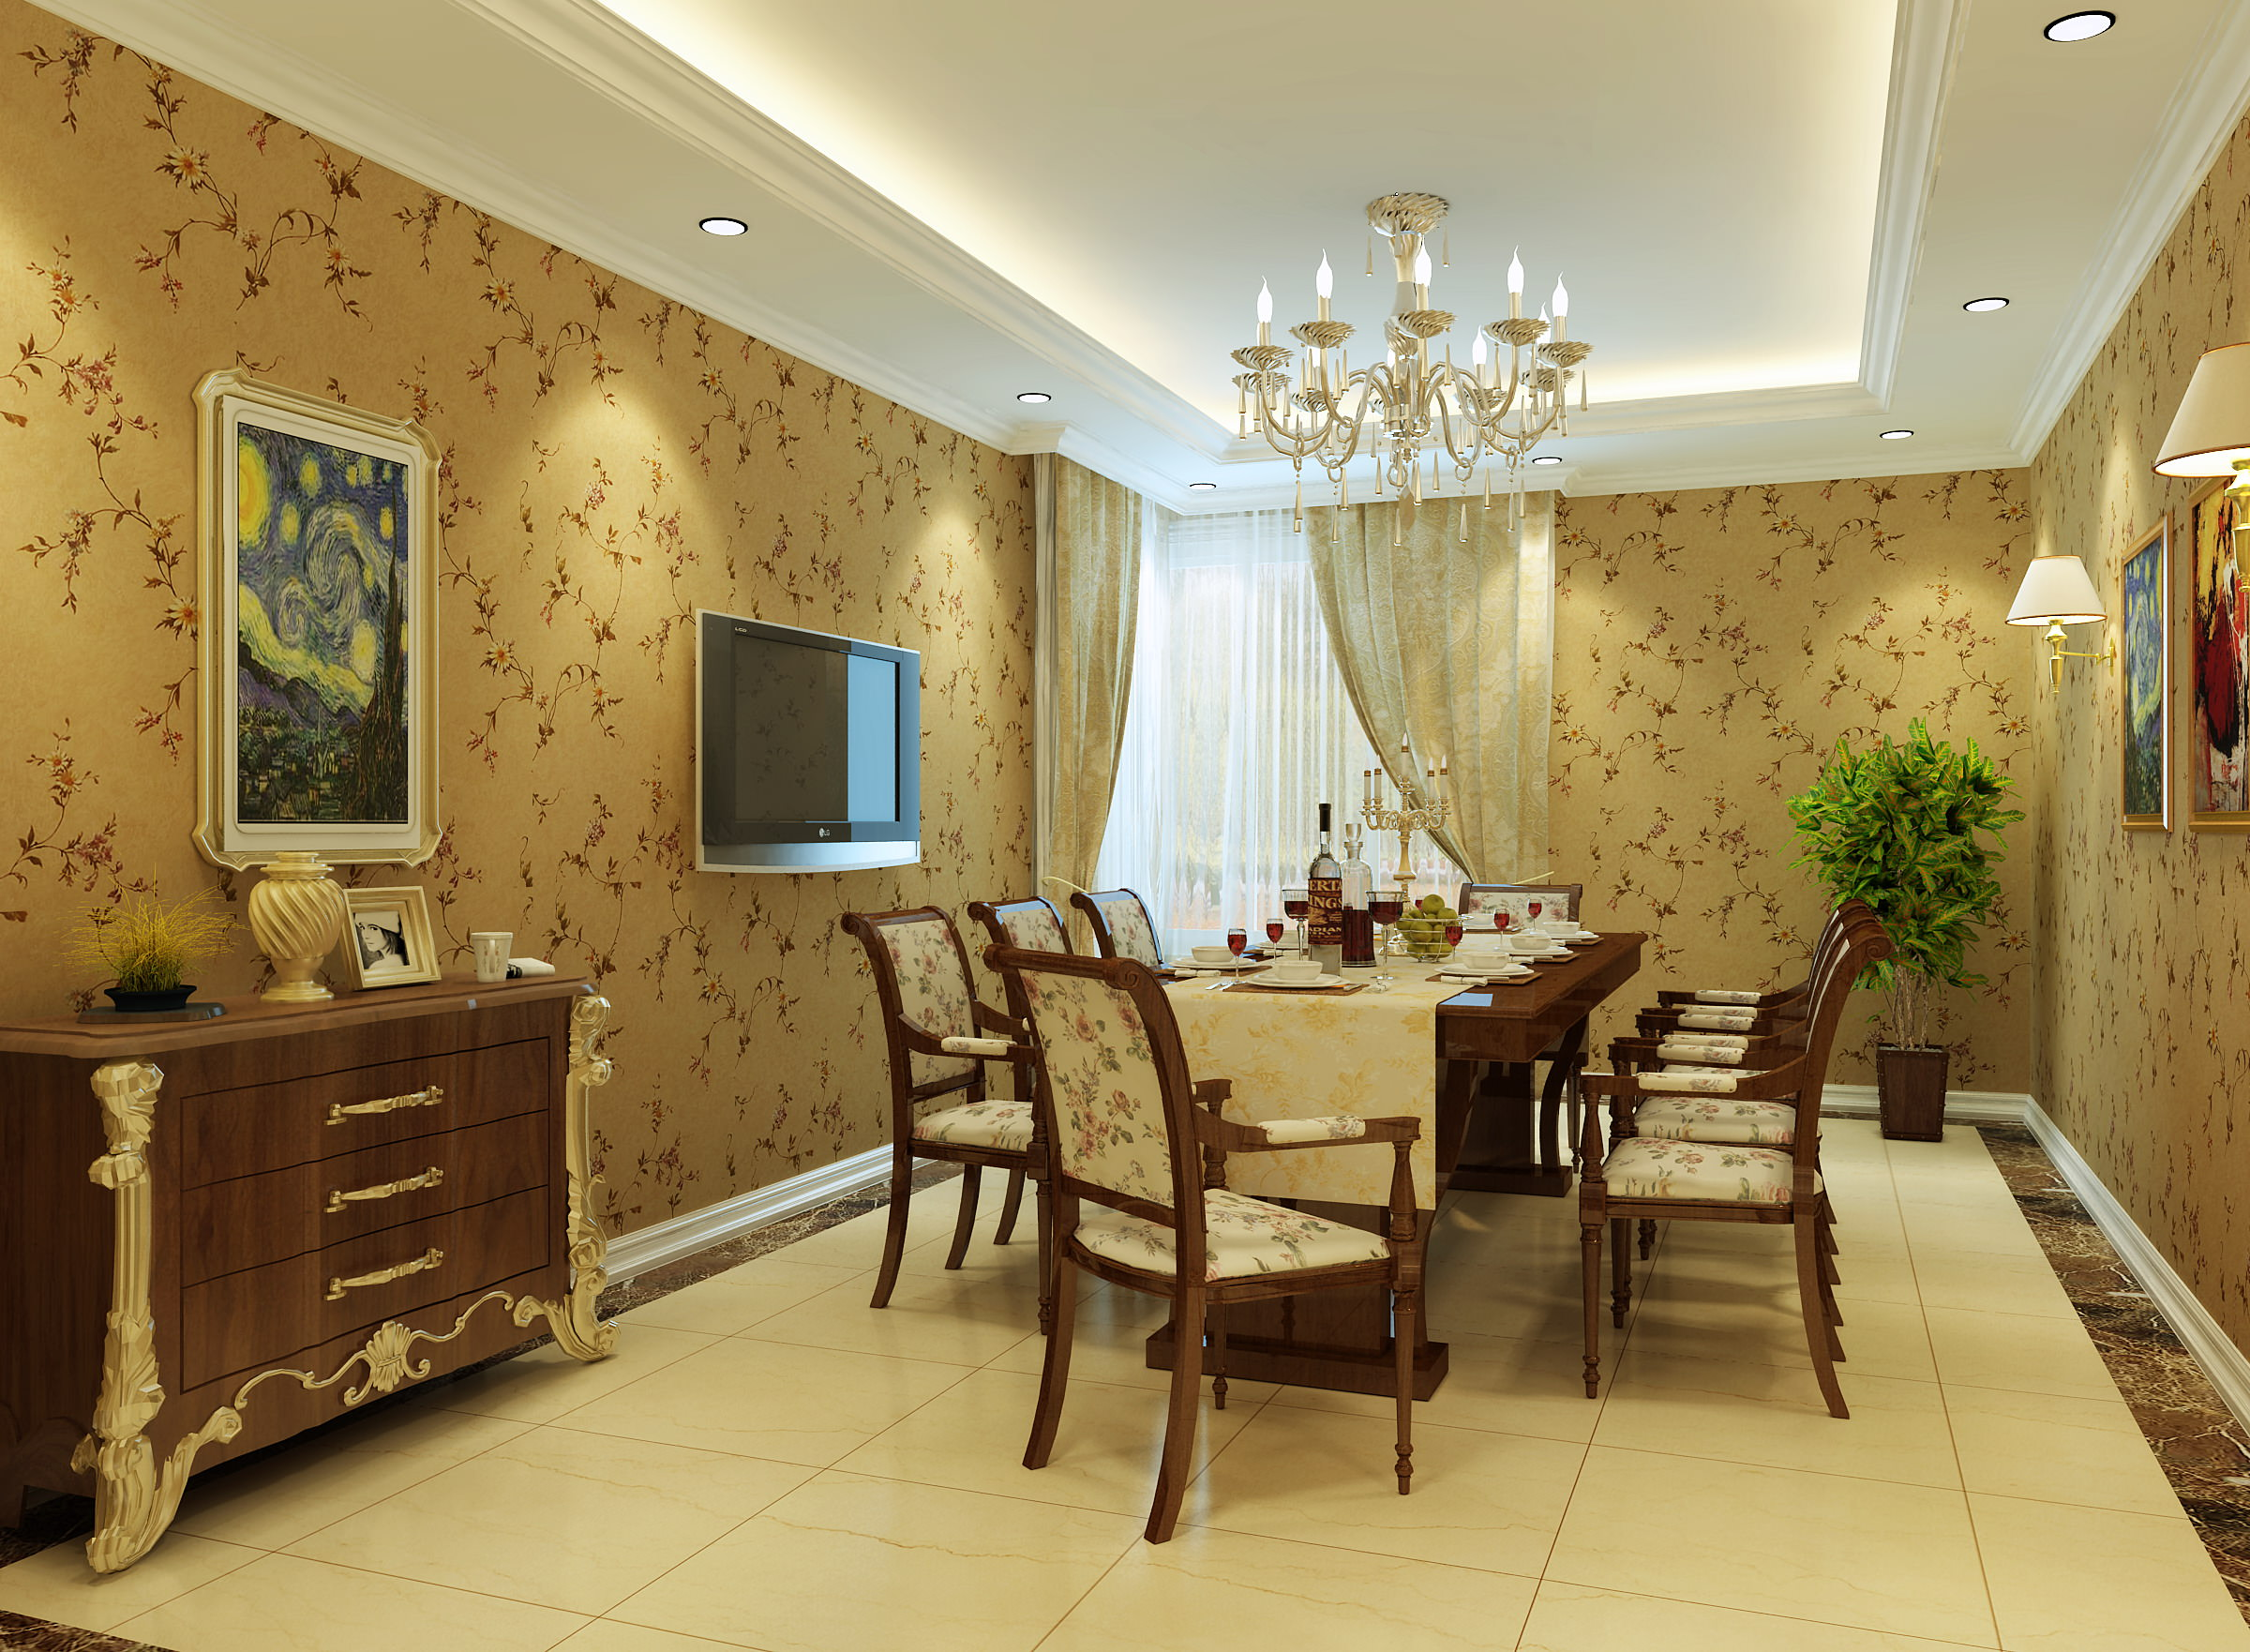 Merveilleux ... Dining Room With Tv And Wall Painting 3d Model Max 2